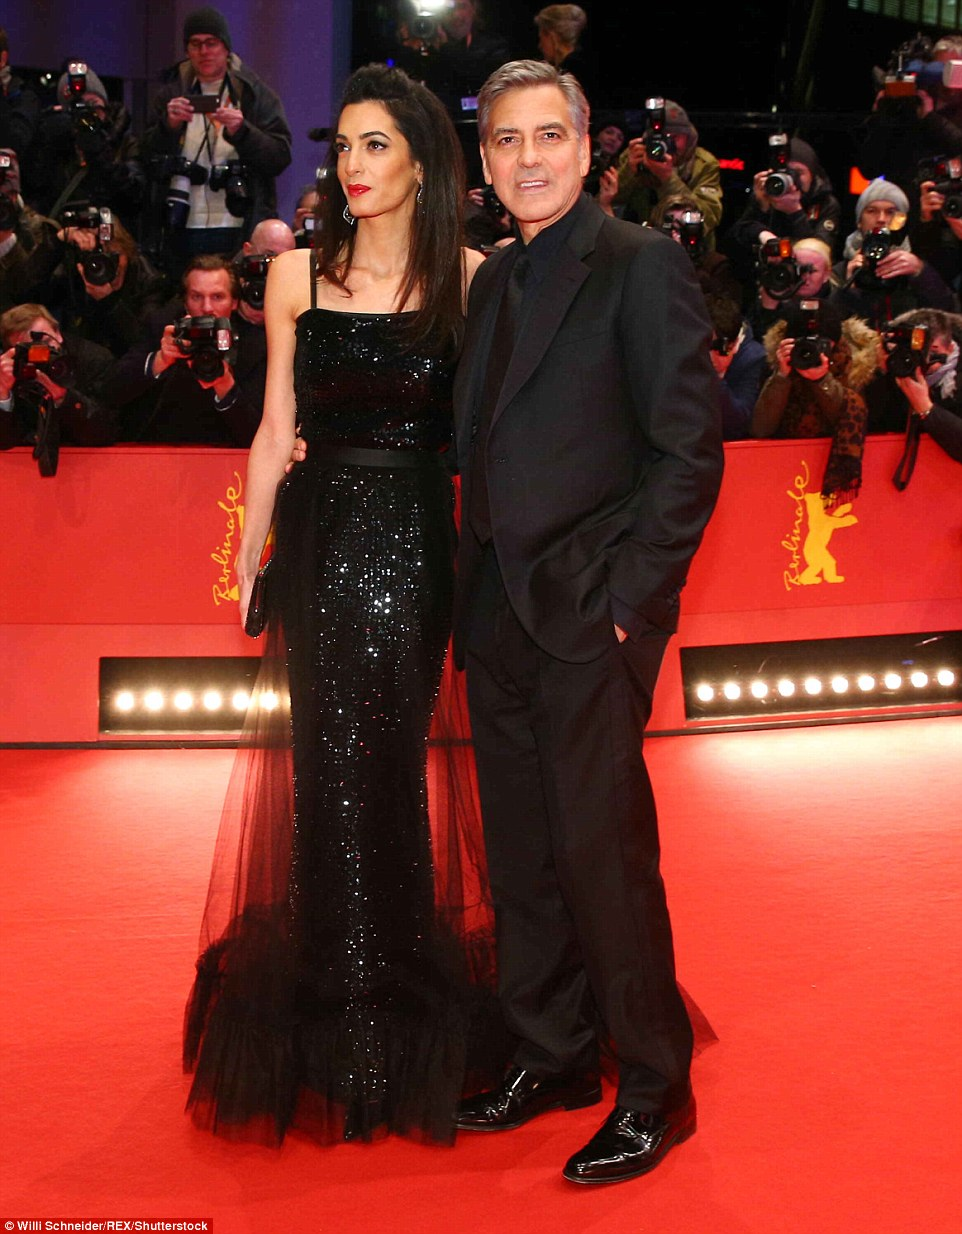 George Clooney and Amal on the red carpet for Hail Caesar Berlin Film Fest premiere 311A08F900000578-0-image-m-56_1455217624128